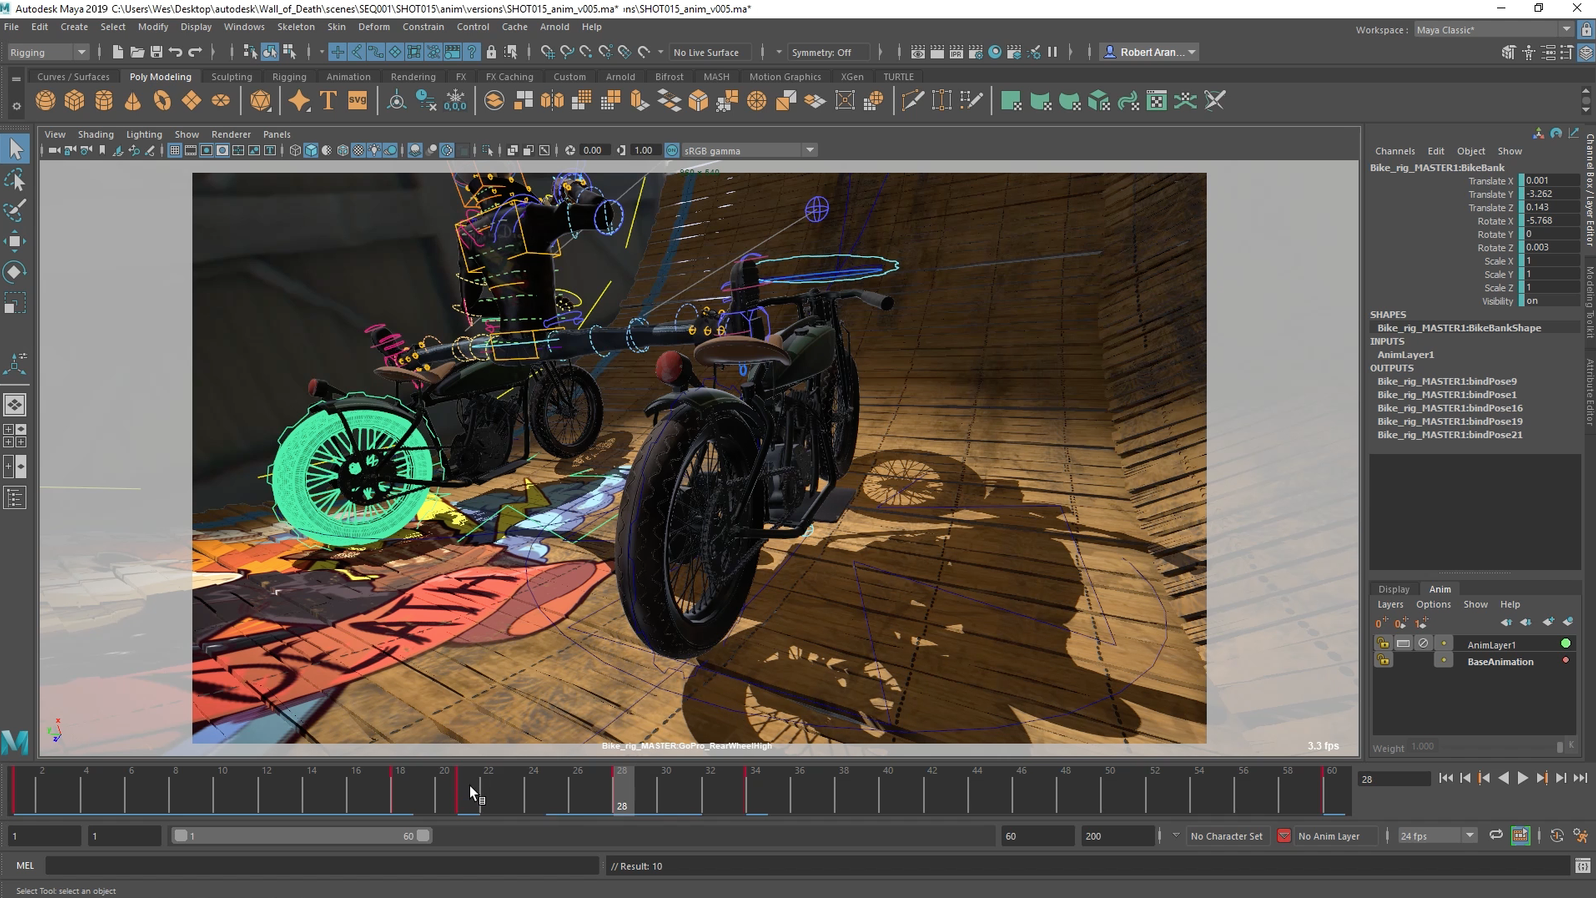 Maya 2019 screenshot